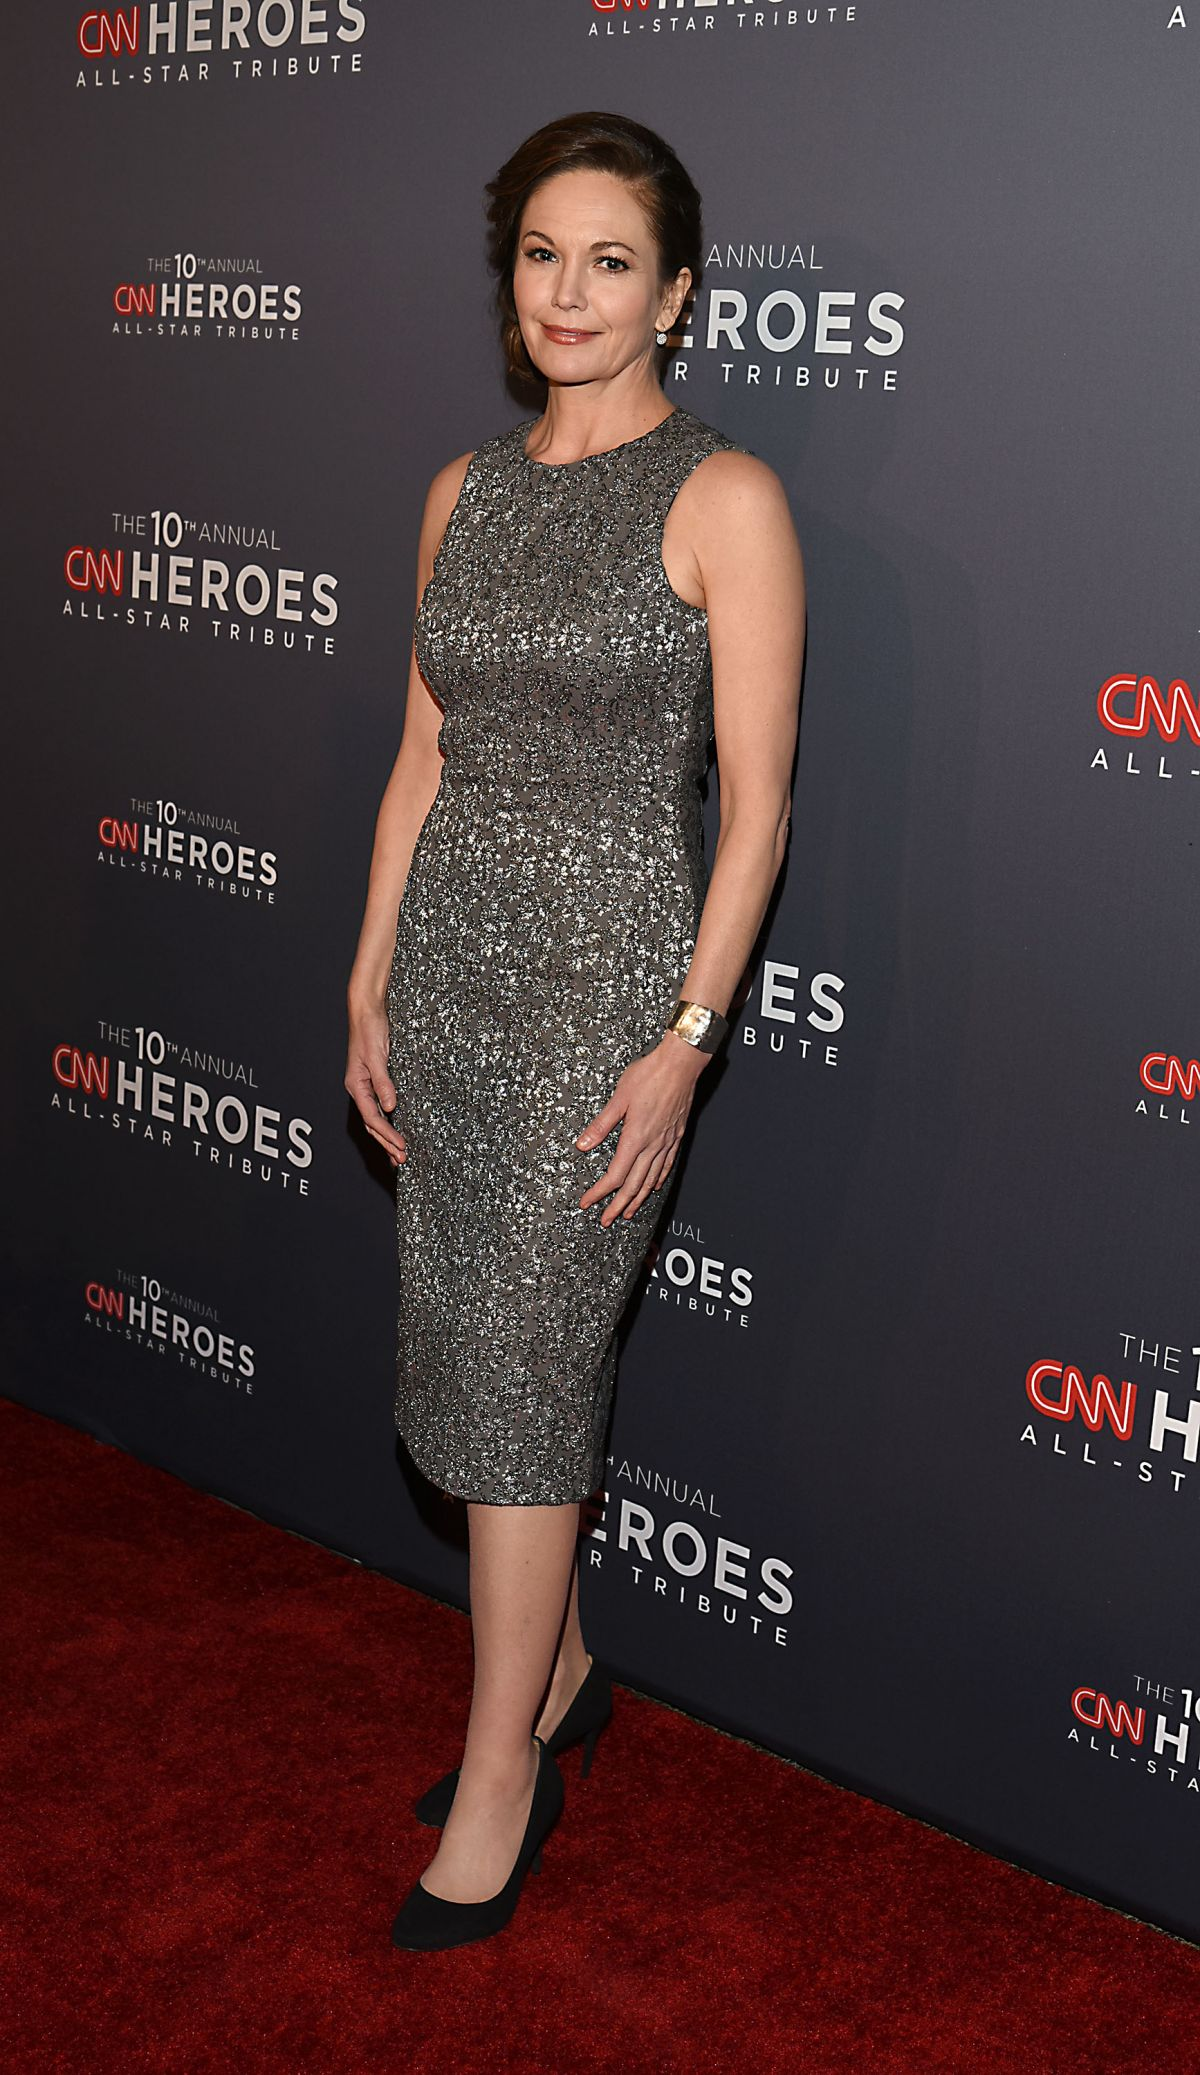 DIANE LANE at CNN 'Heroes' 2016 in New York 12/11/2016